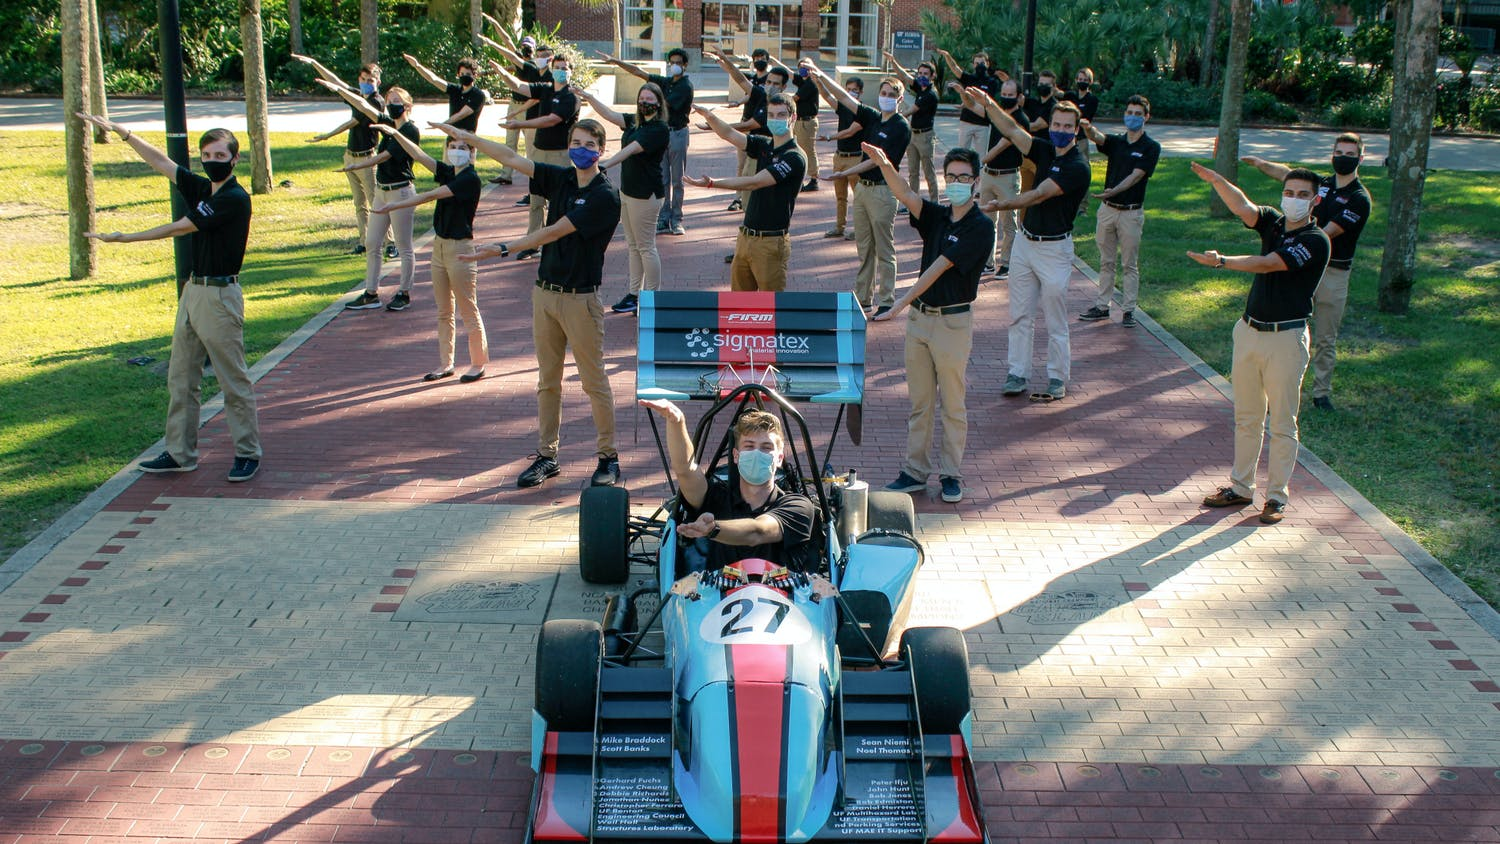 Gator Motorsports competes in the Formula SAE competition held annually at Michigan International Speedway in Brooklyn, Michigan.